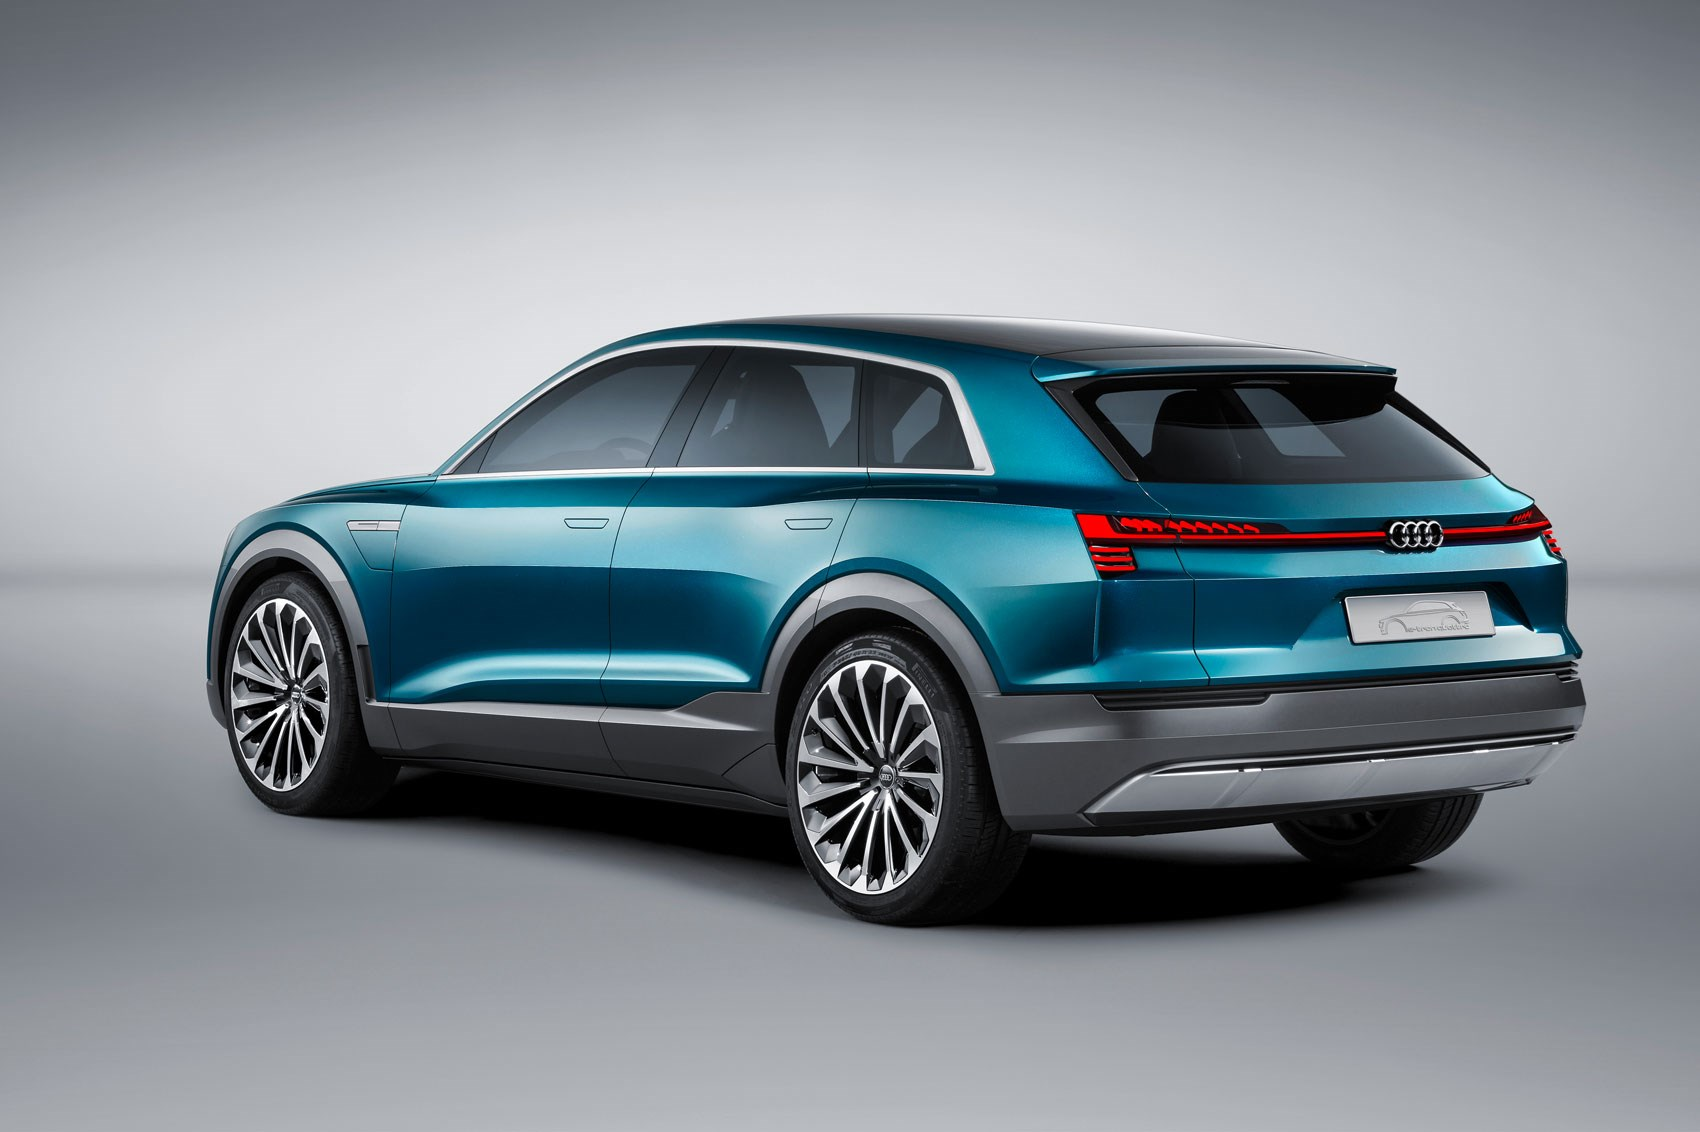 electric launch to audi plans is model a e tron new models an year news all vehicle suv go starting in the concept lr every quattro that will